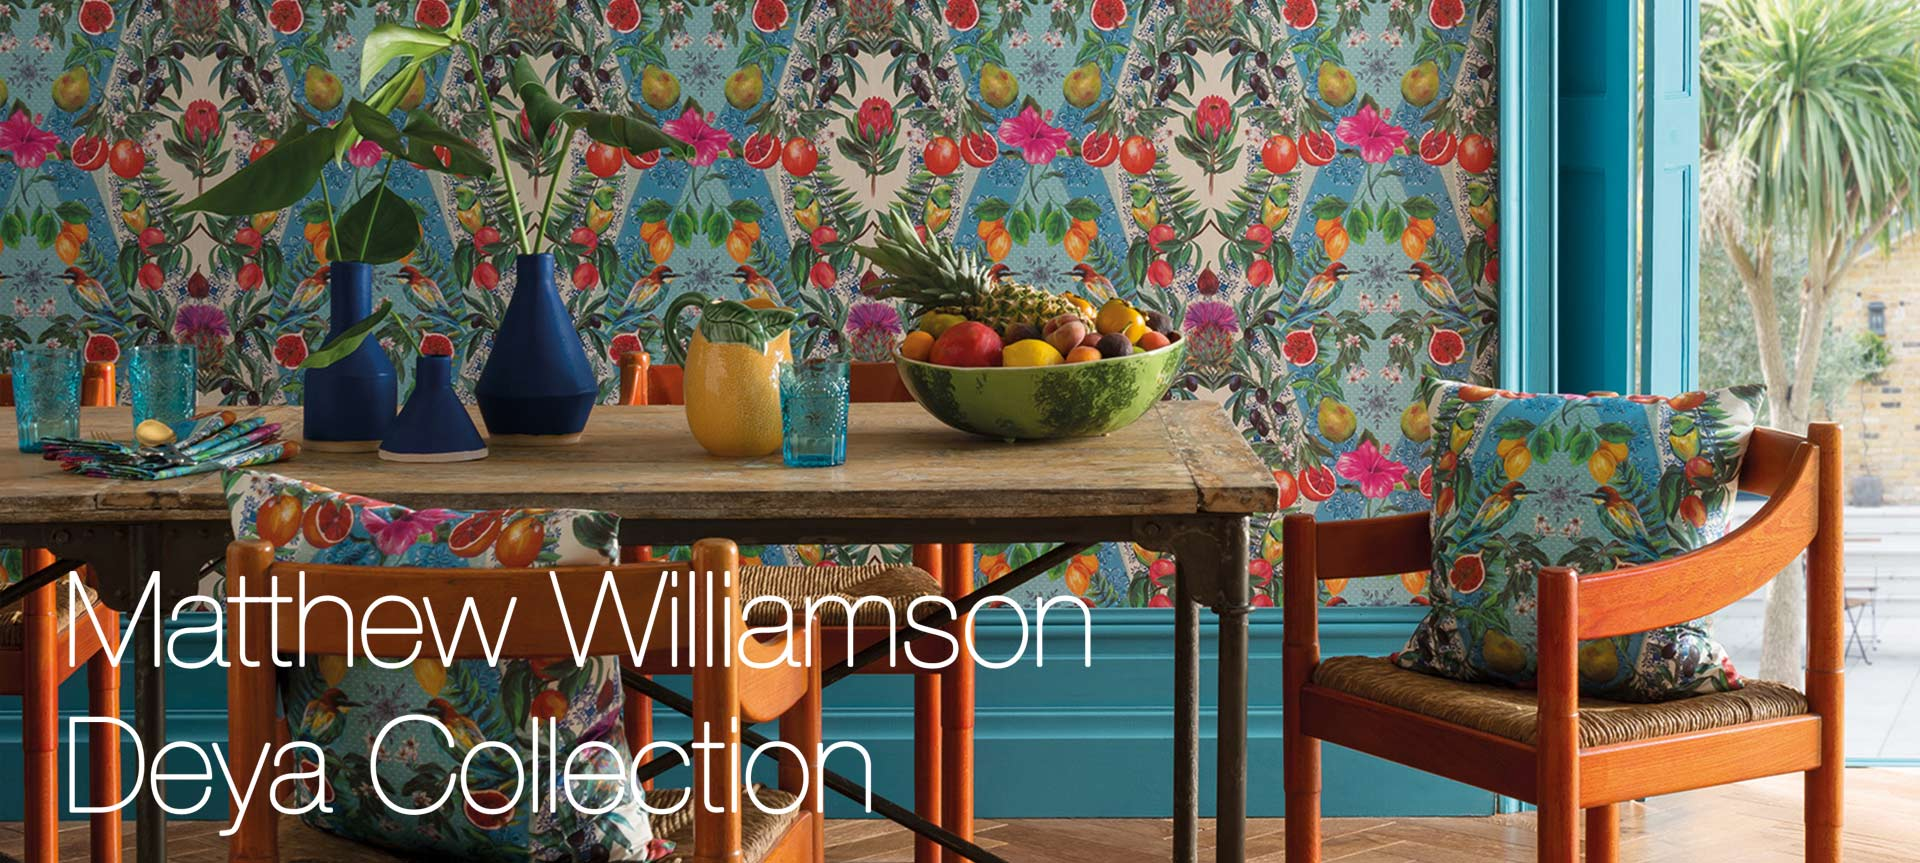 matthew williamson deya